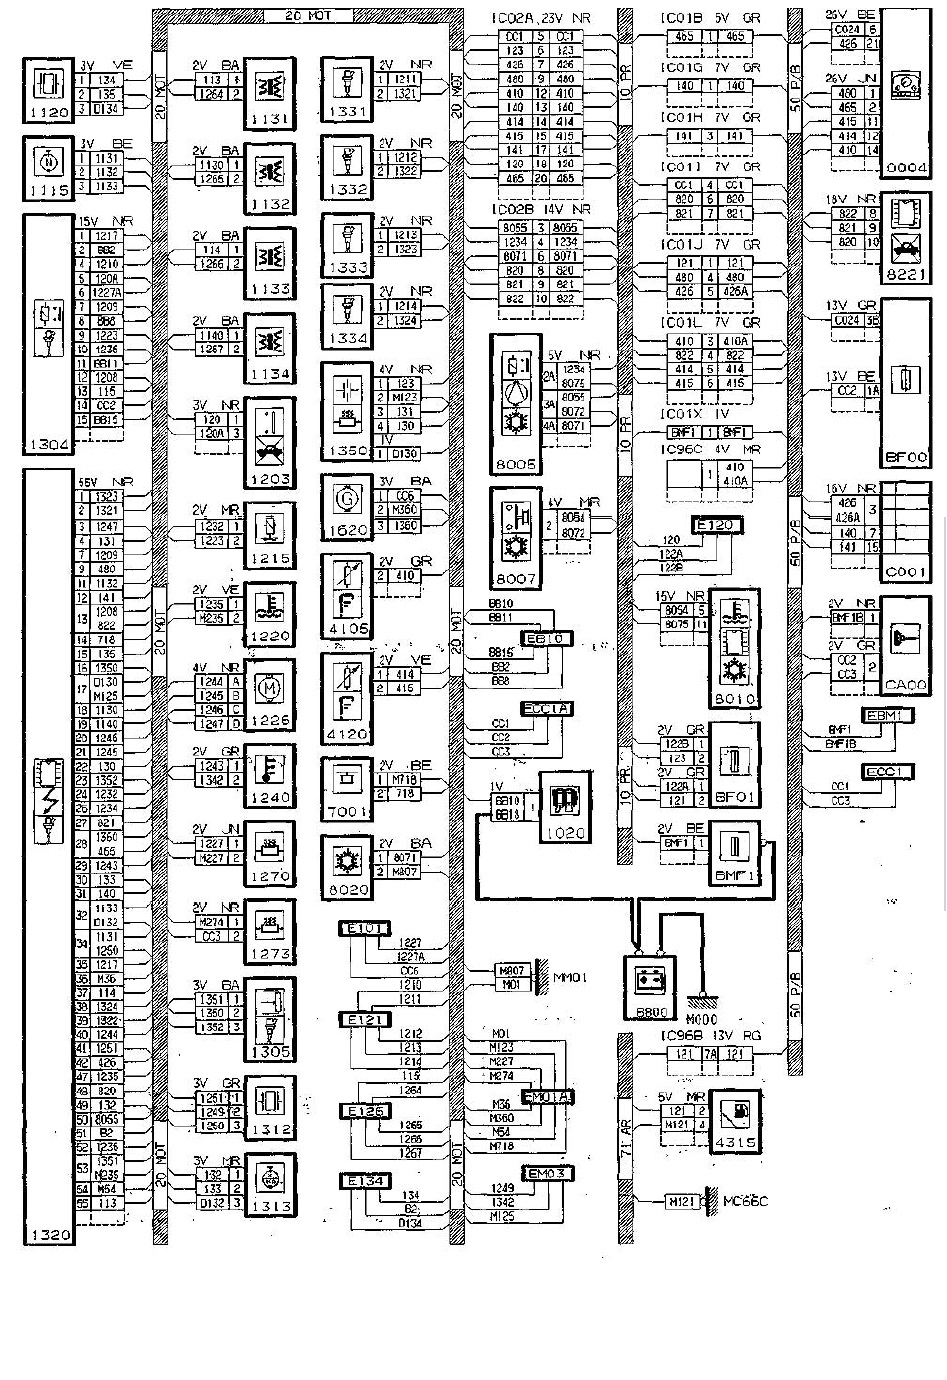 medium resolution of wiring diagram electrical forum peugeot 306 gti 6 rallye peugeot 306 gti 6 wiring diagram peugeot 306 gti 6 wiring diagram